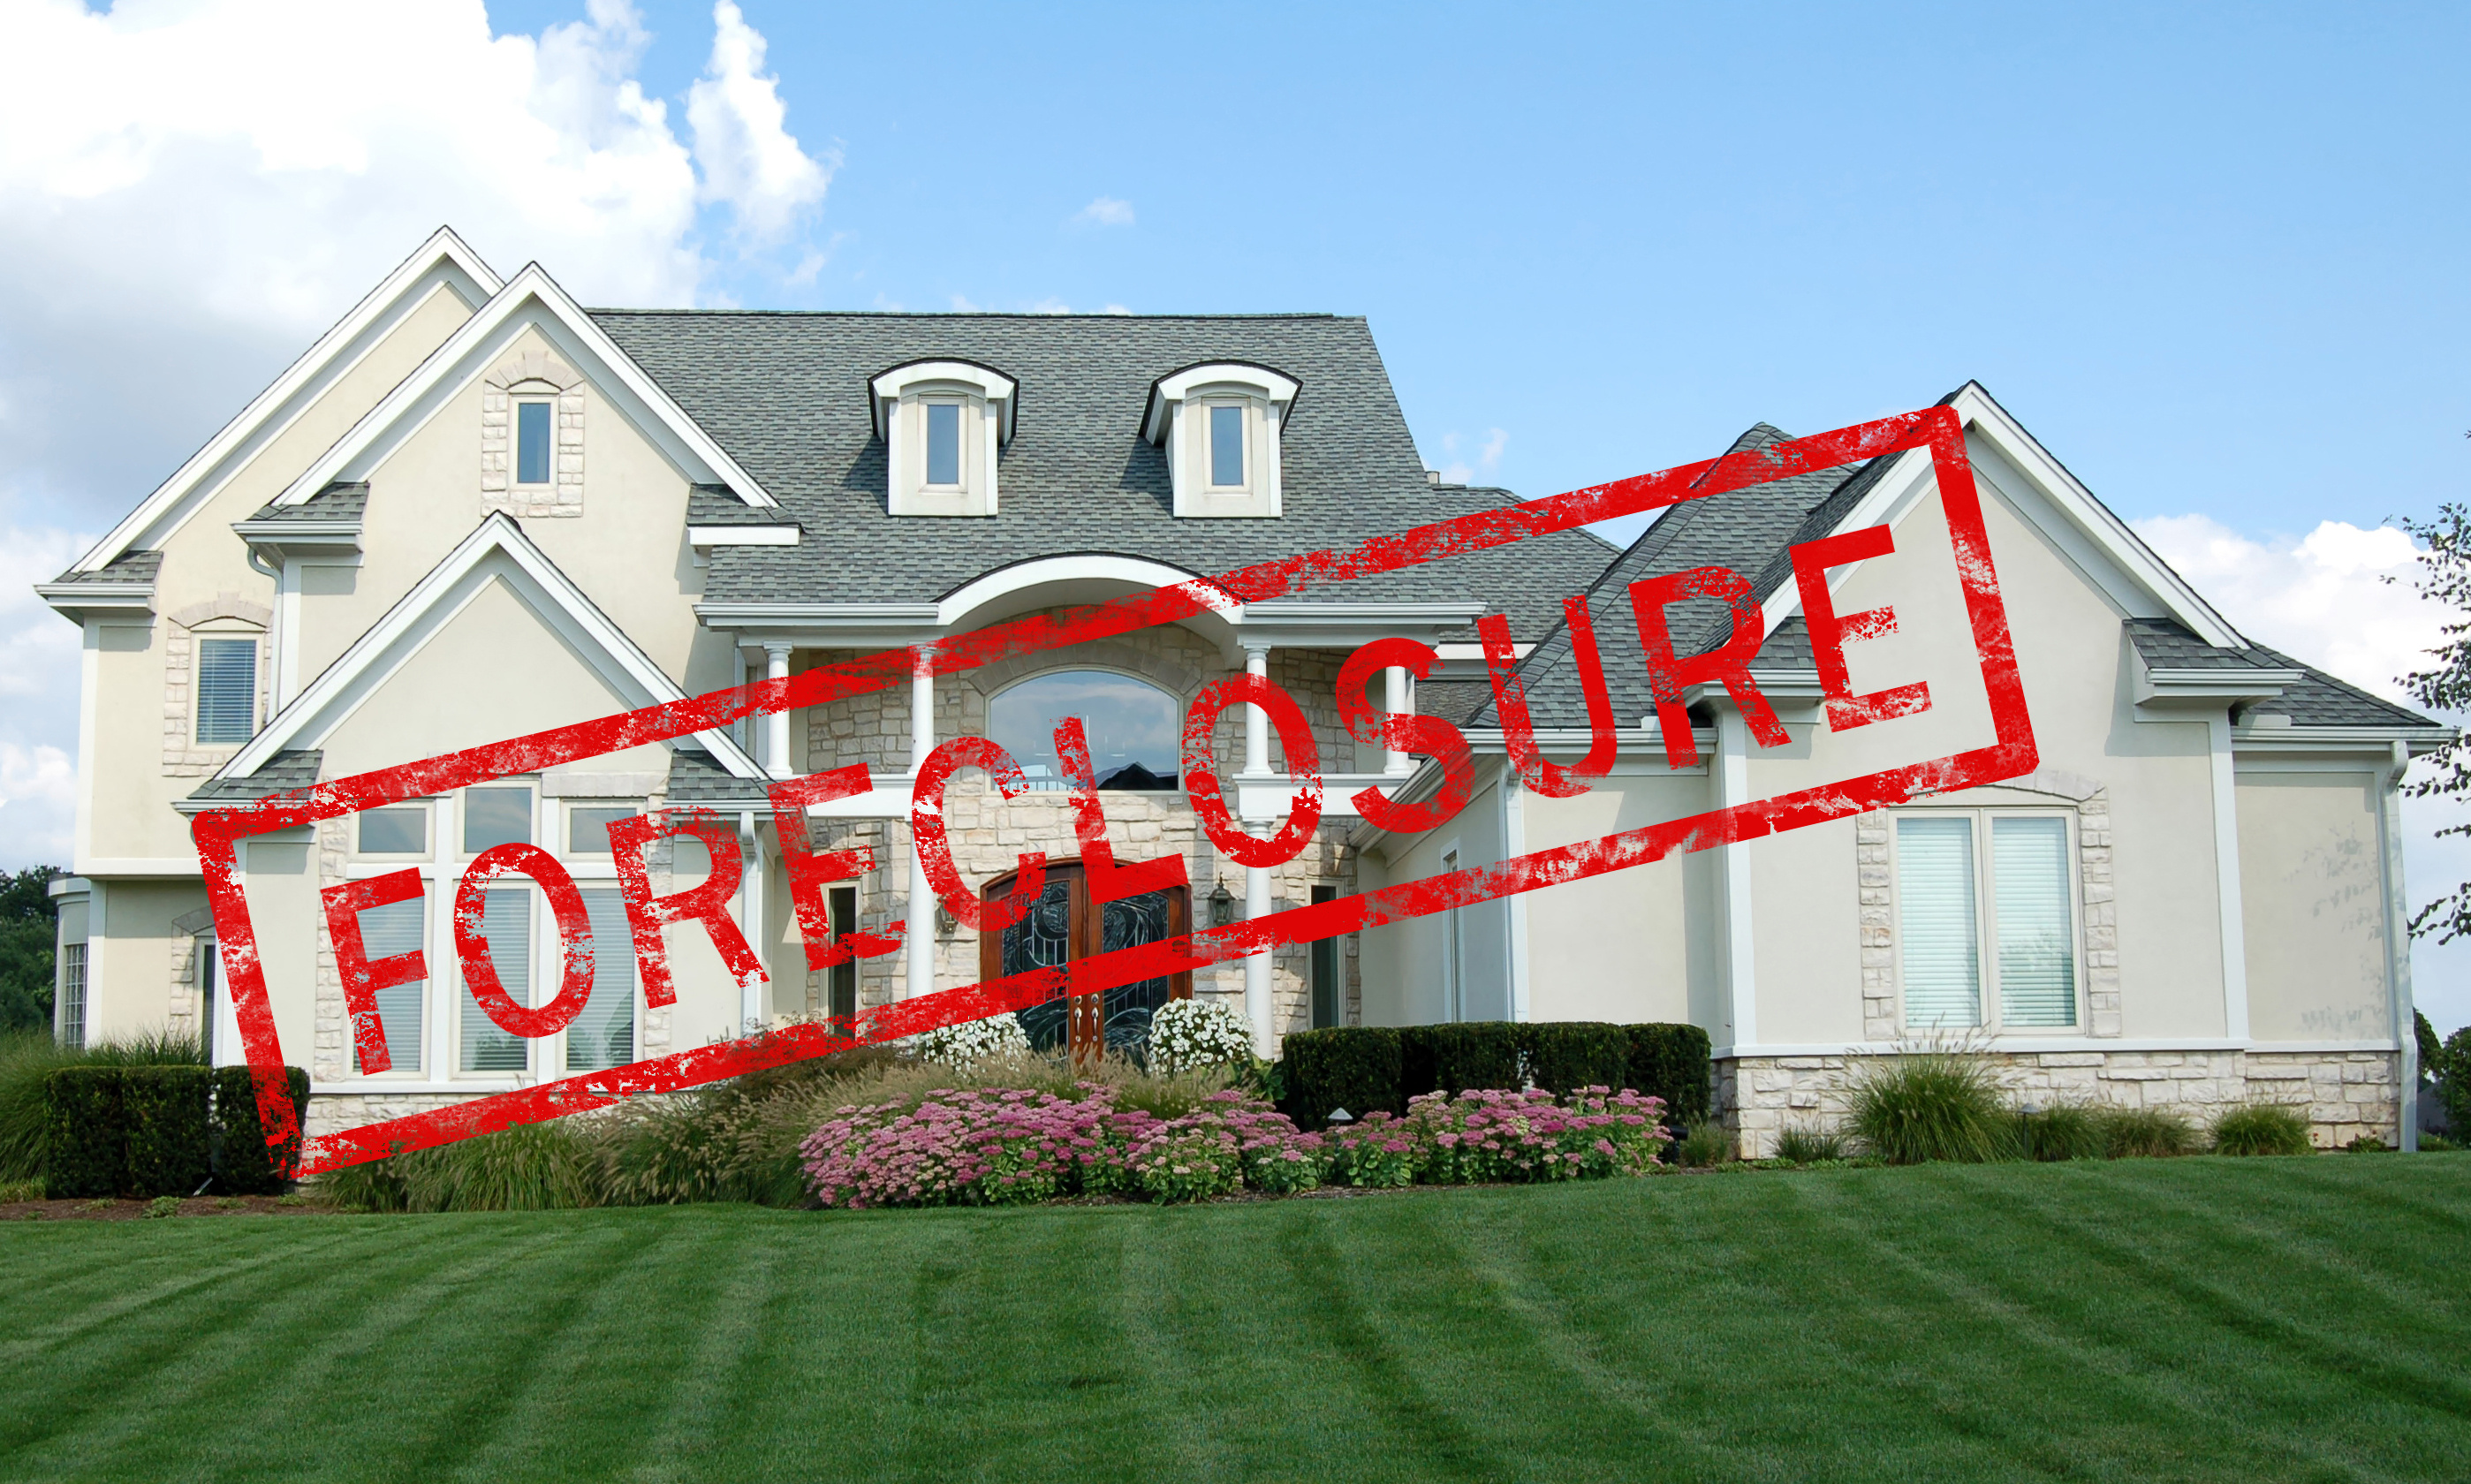 Call Herrin Appraisal Company when you need appraisals on Forsyth foreclosures